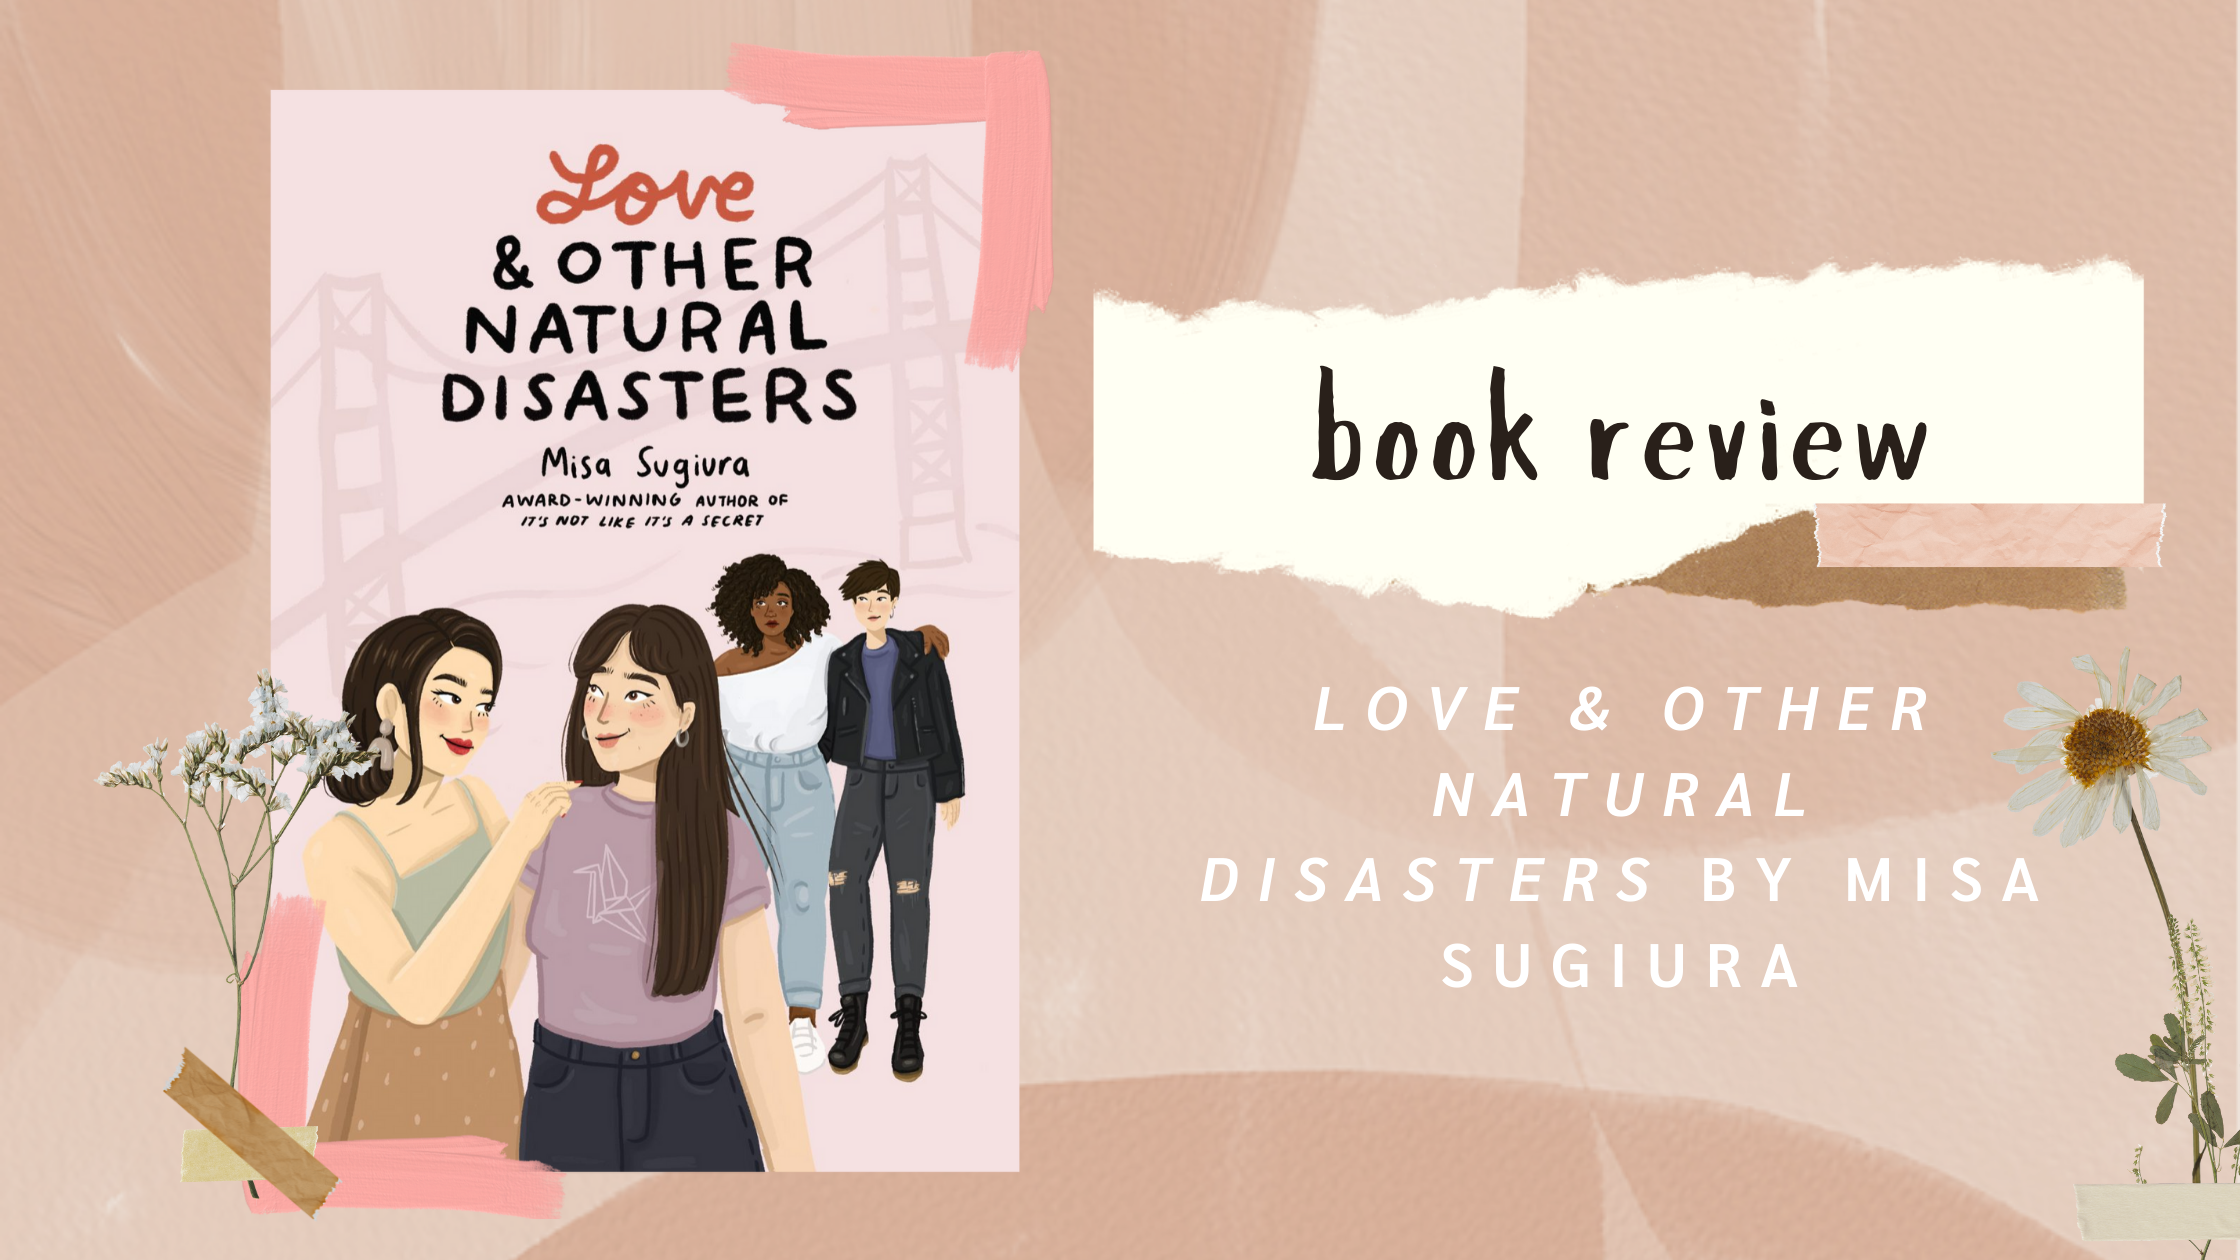 BOOK REVIEW: Love & Other Natural Disasters by Misa Sugiura